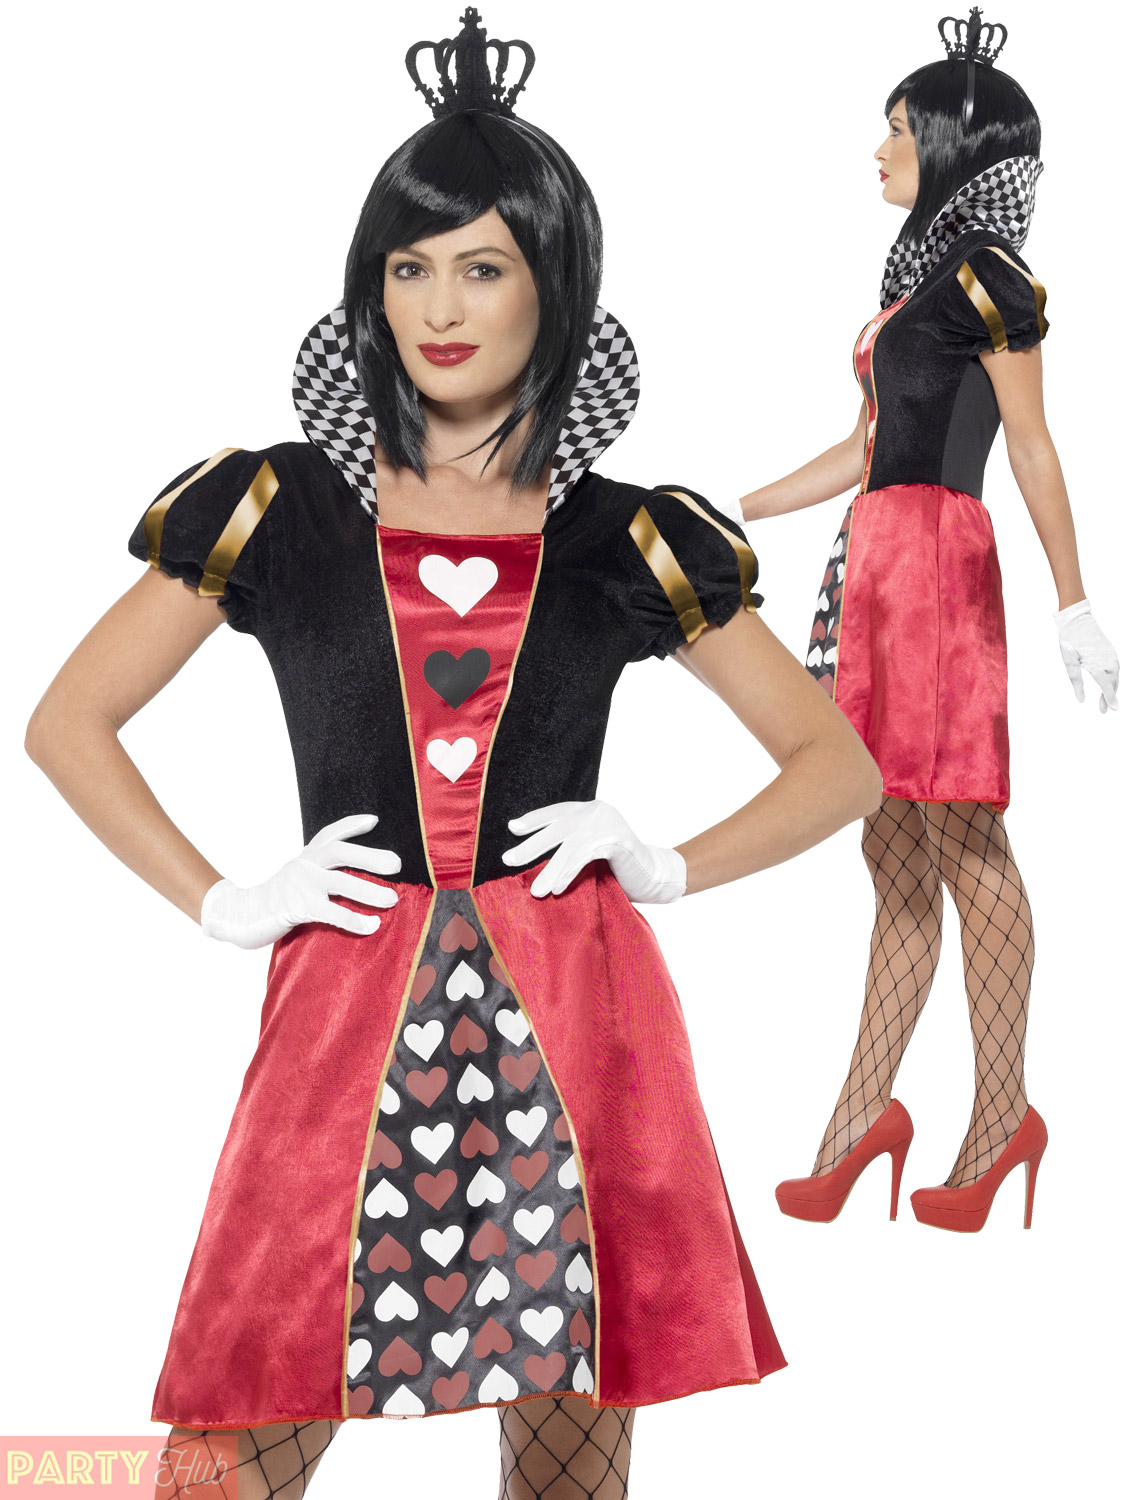 ladies queen of hearts costume adult fancy dress outfit. Black Bedroom Furniture Sets. Home Design Ideas